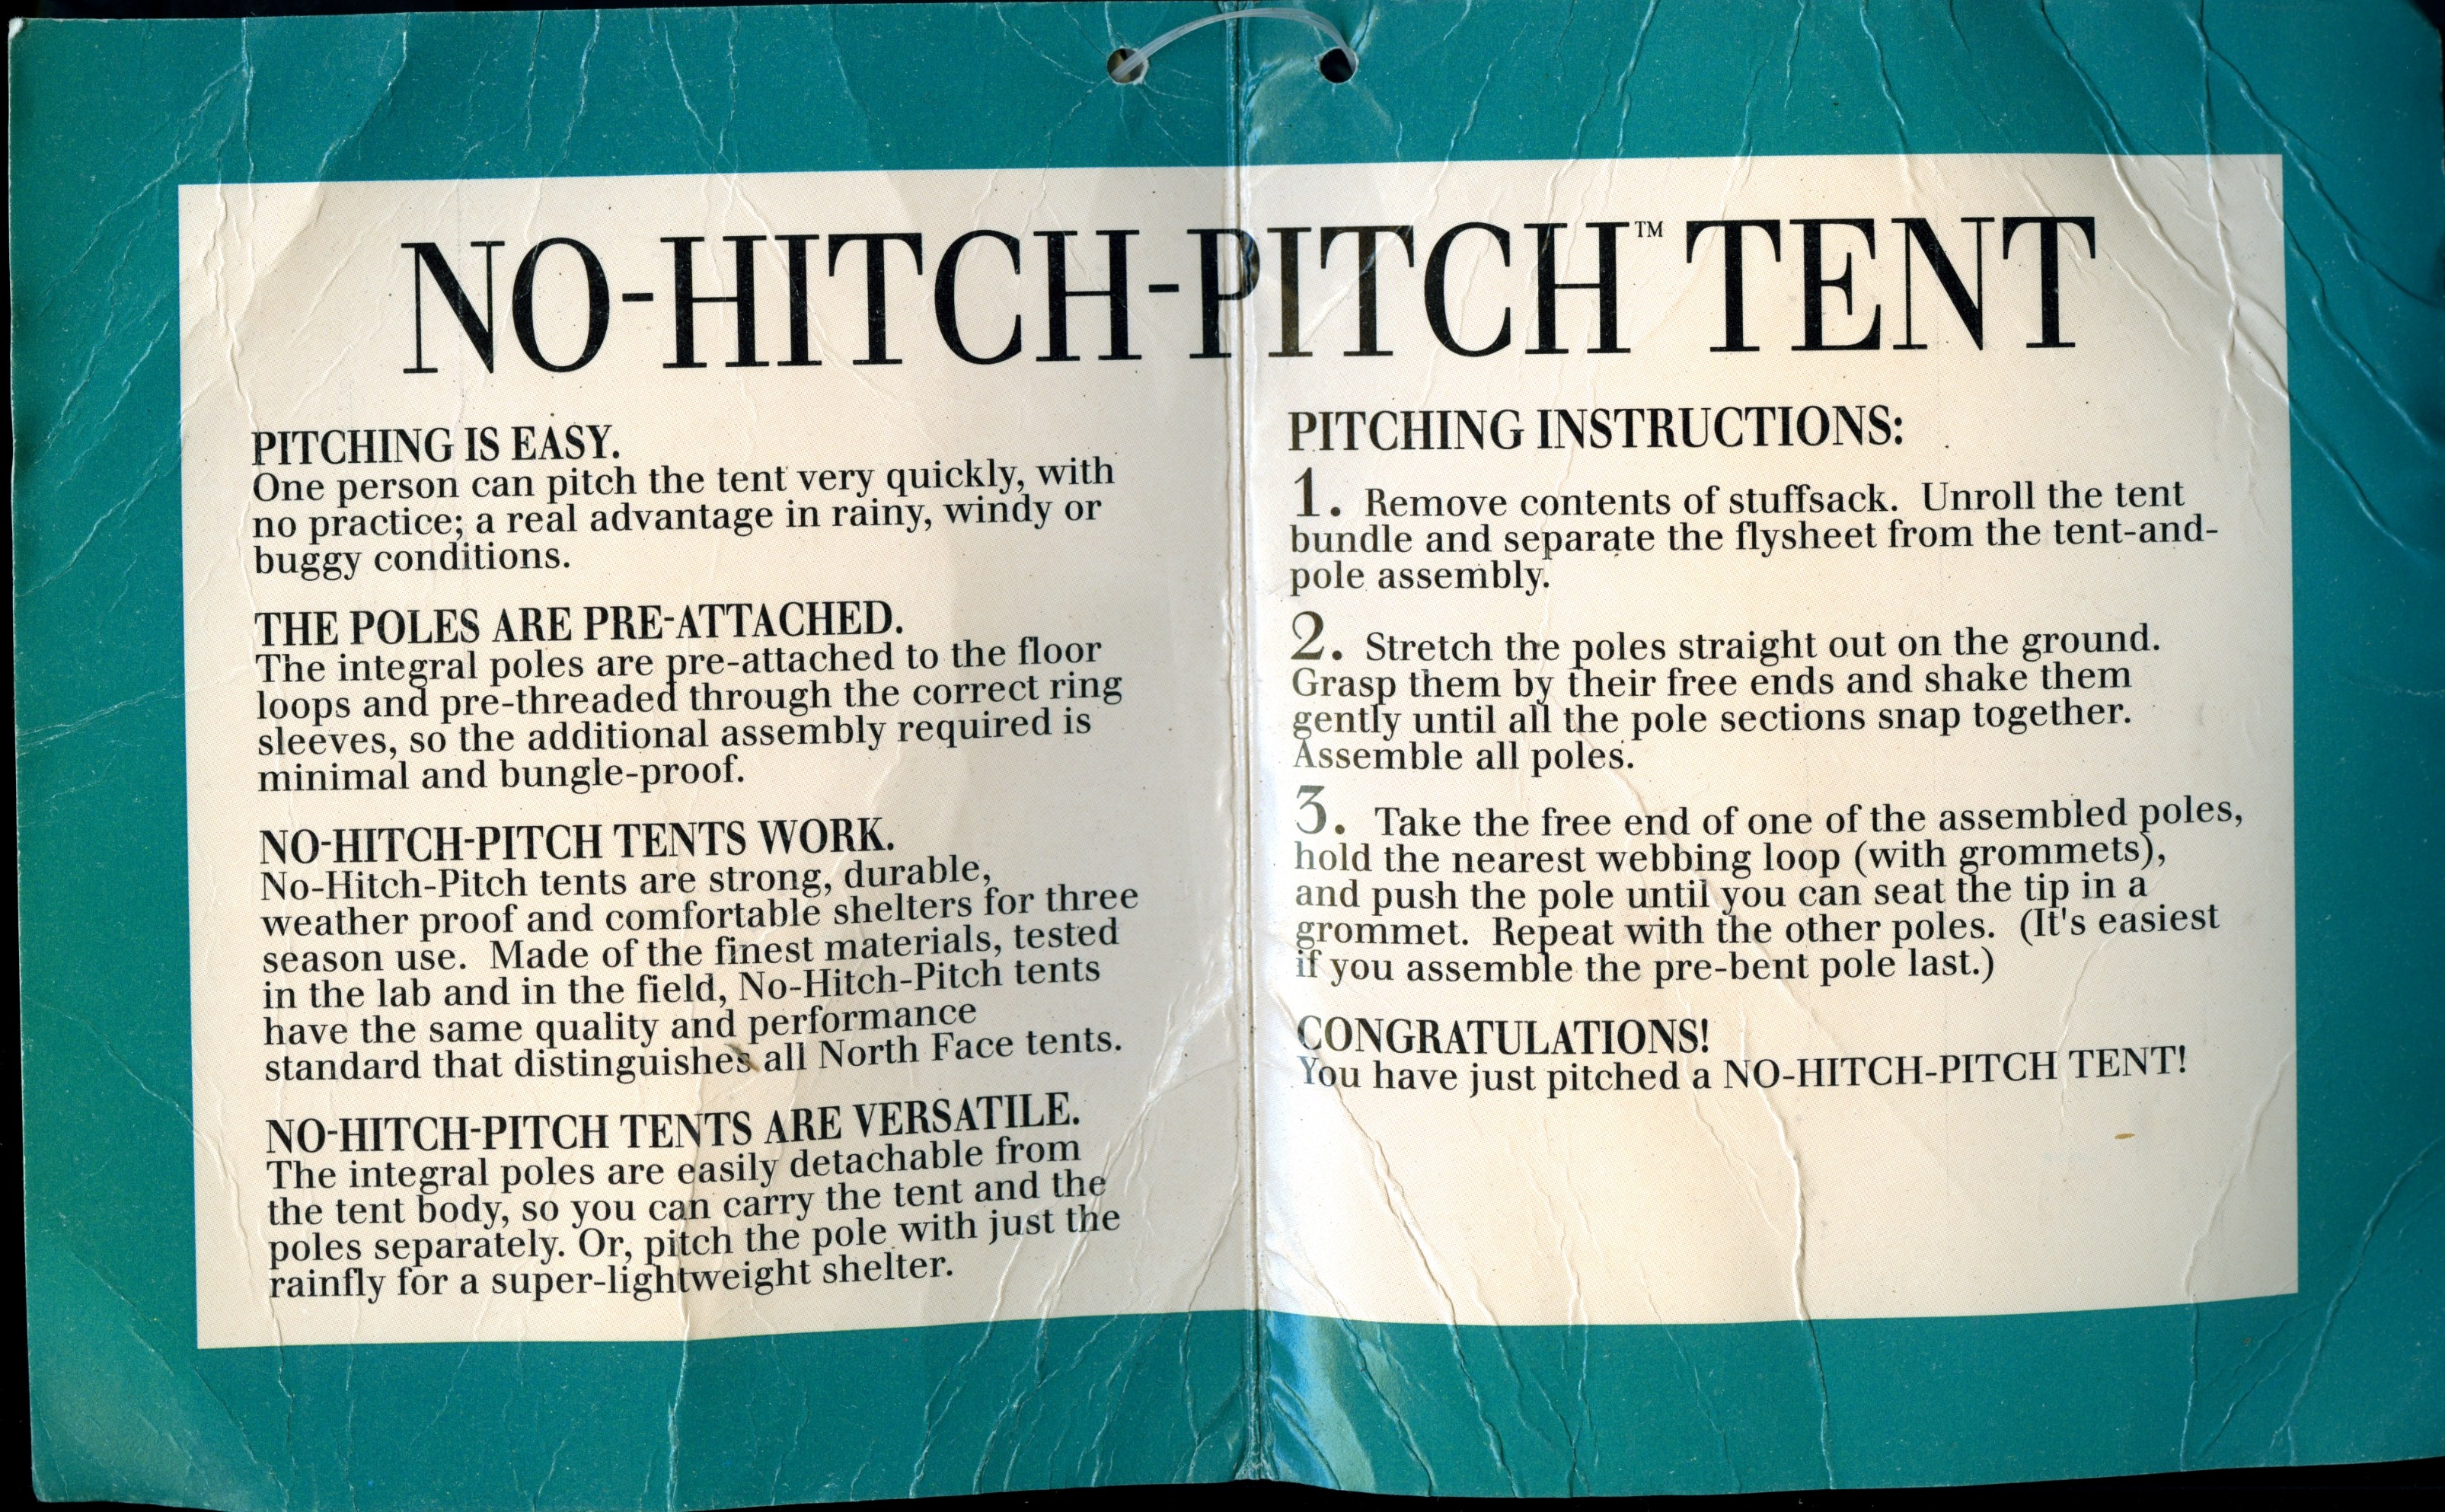 north face mountain 25 tent instructions